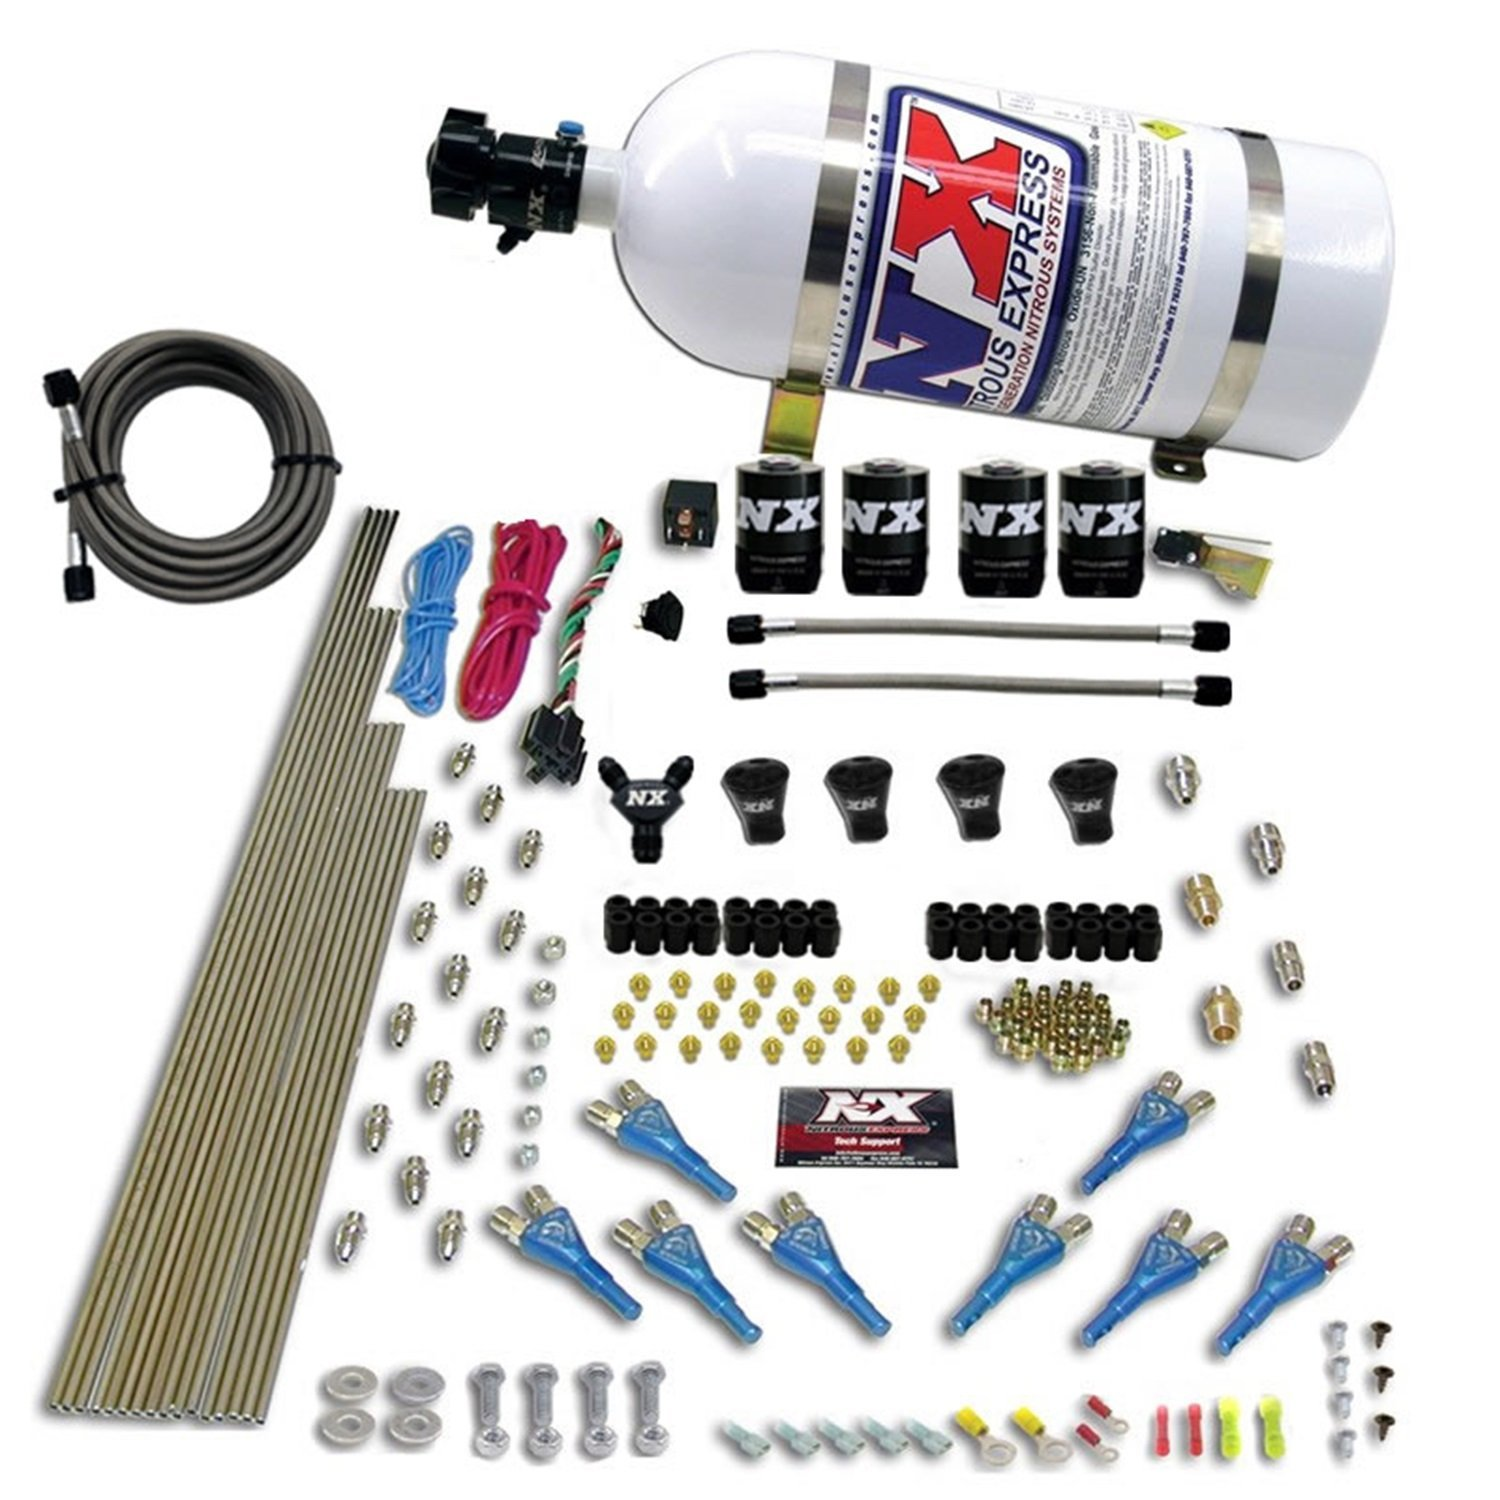 Bottle Rails and 15 lbs Nitrous Express 91006-15 200-600 HP 8-Cylinder Gasoline Pro Shark Direct Port System with 4 Solenoids